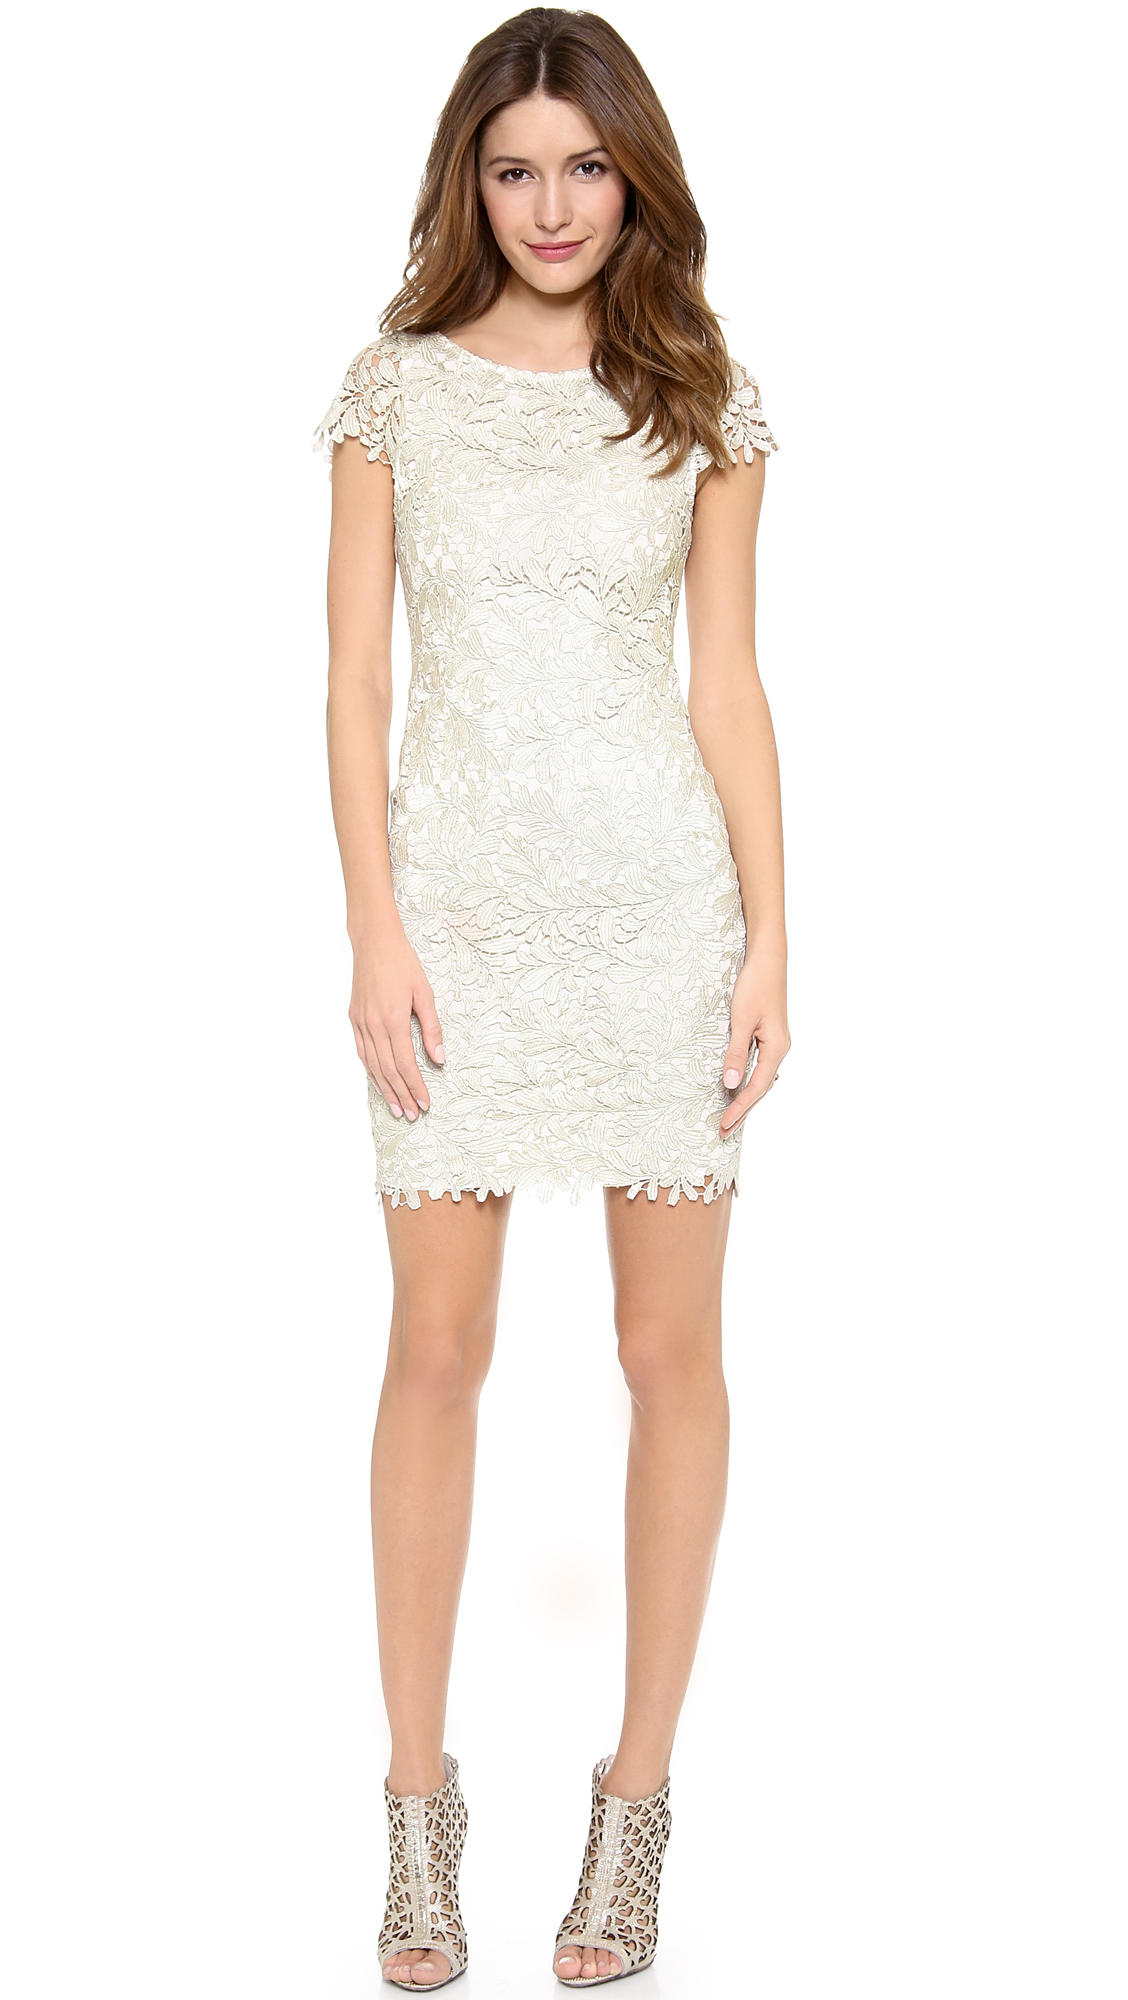 Lyst - Alice + olivia Alice Olivia Clover Lace Fitted Midi ...